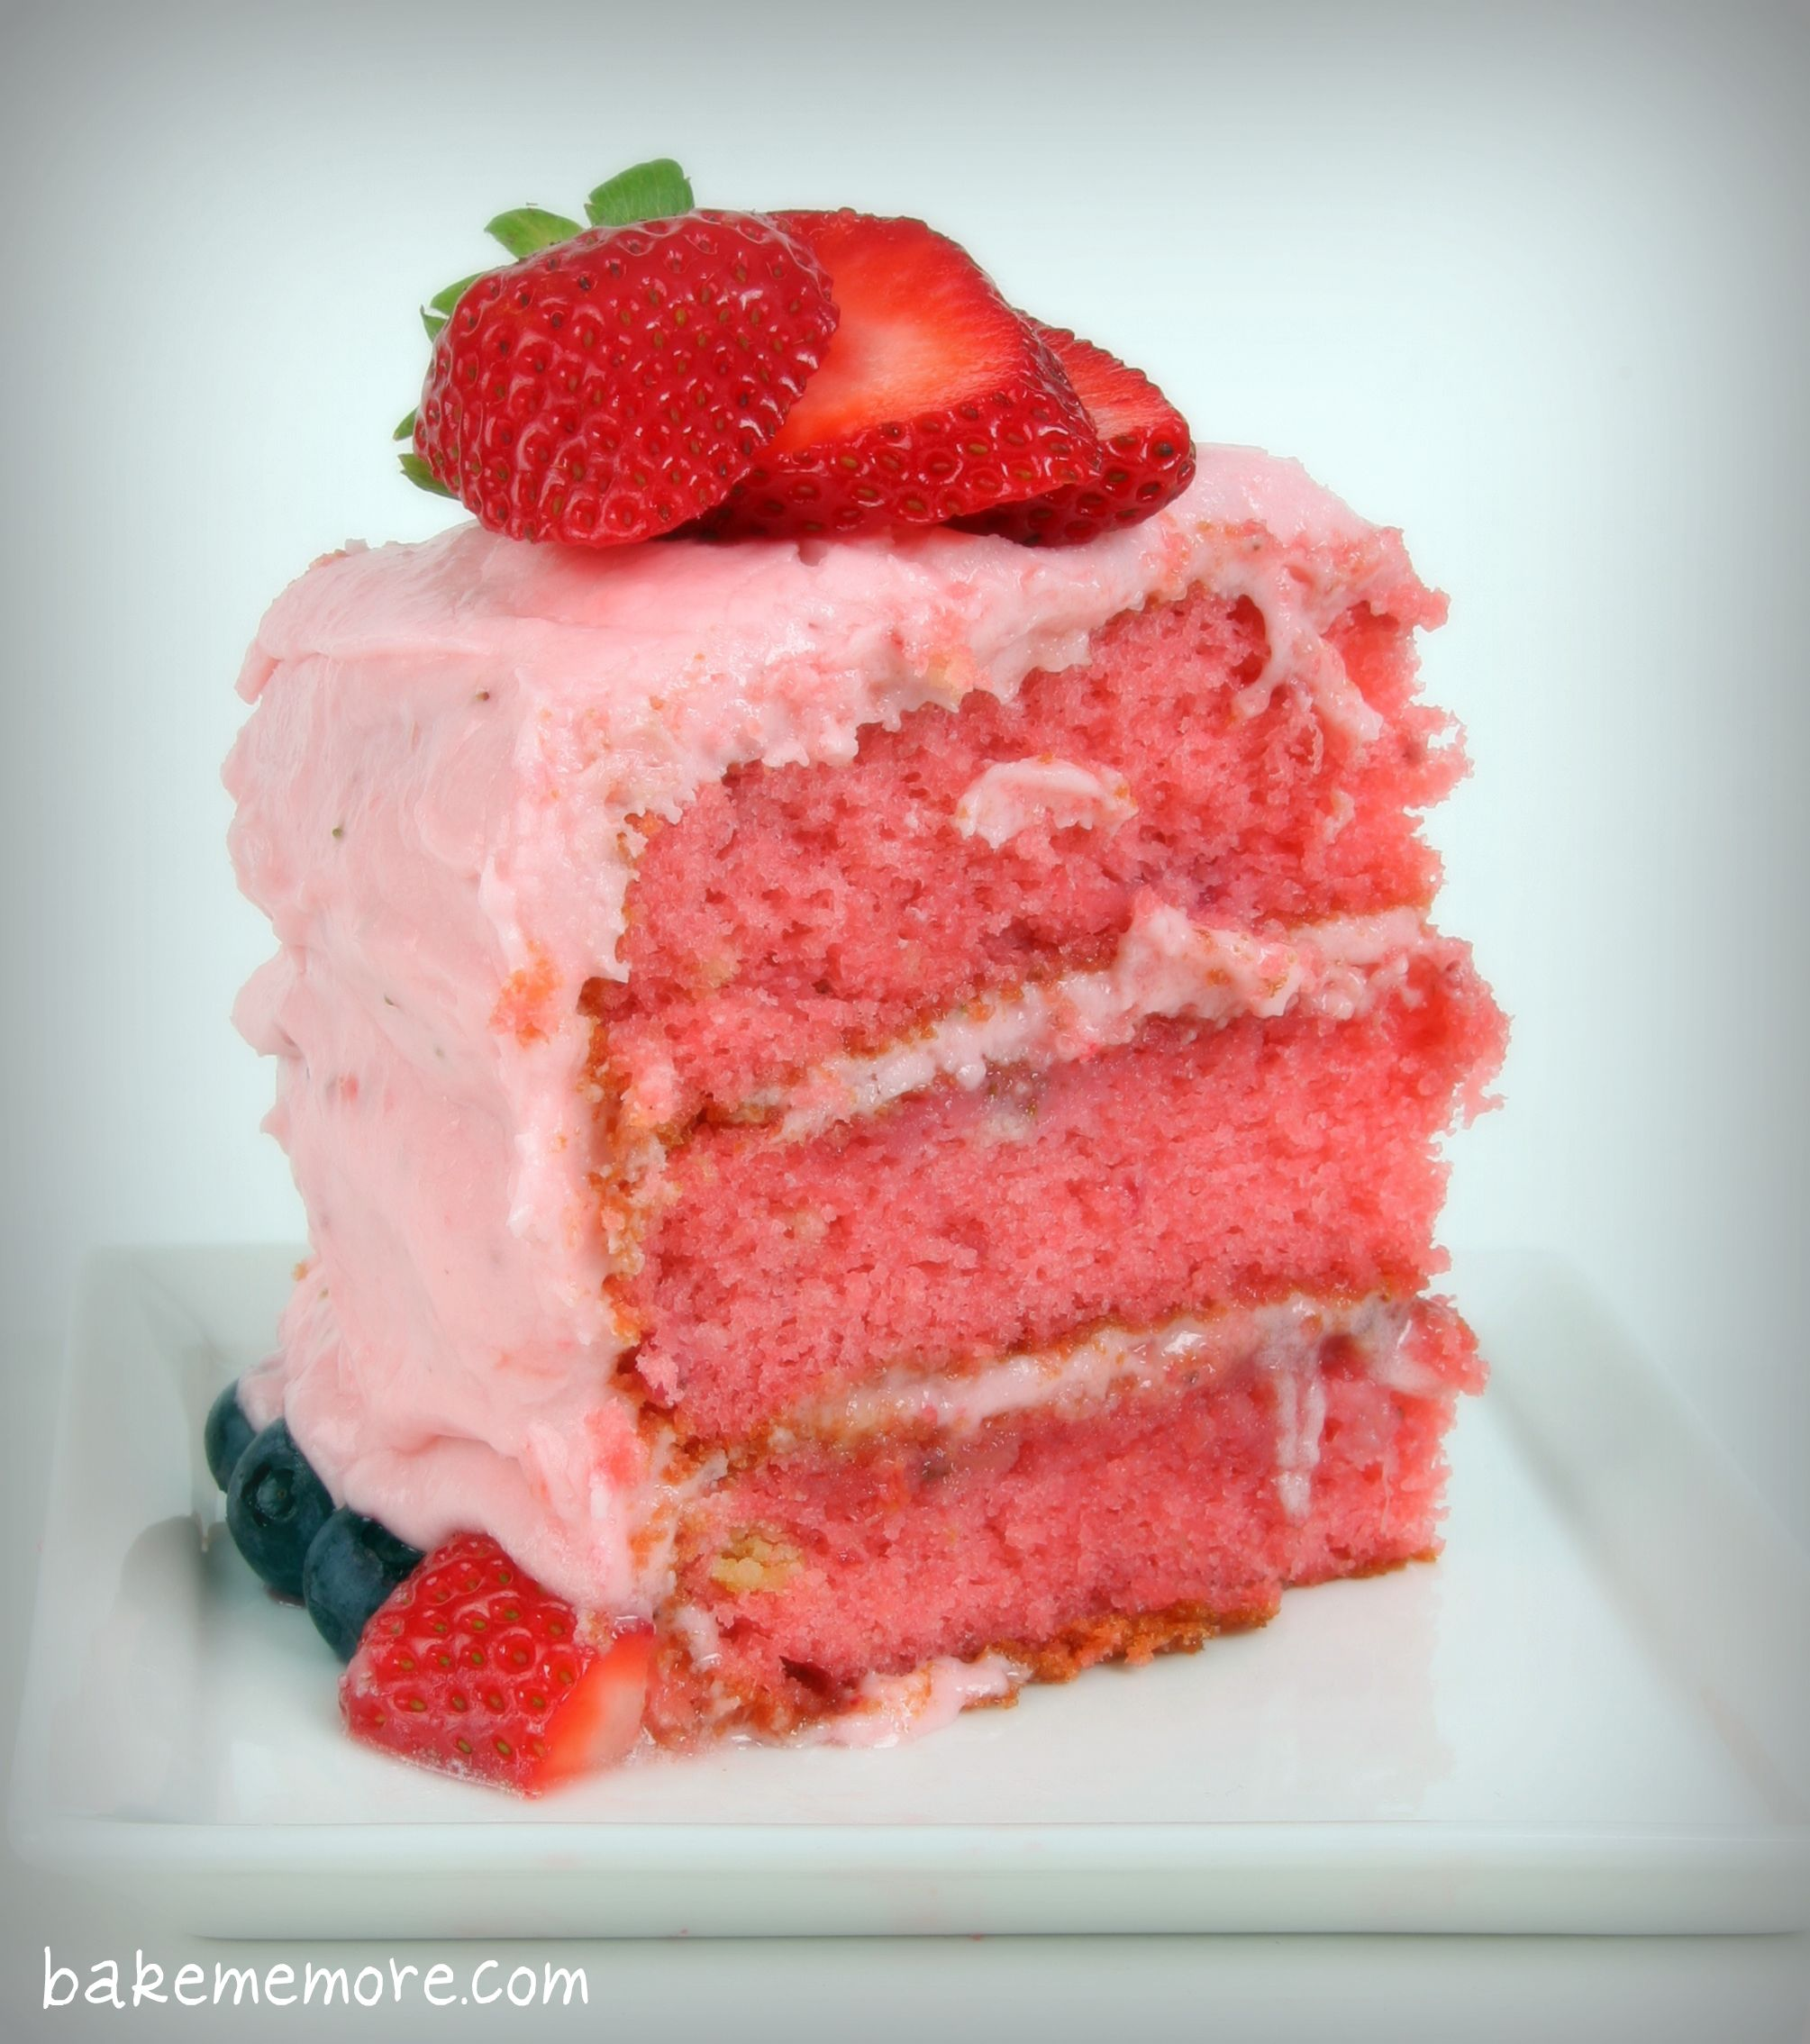 Strawberry Cake Recipe Using Cake Mix